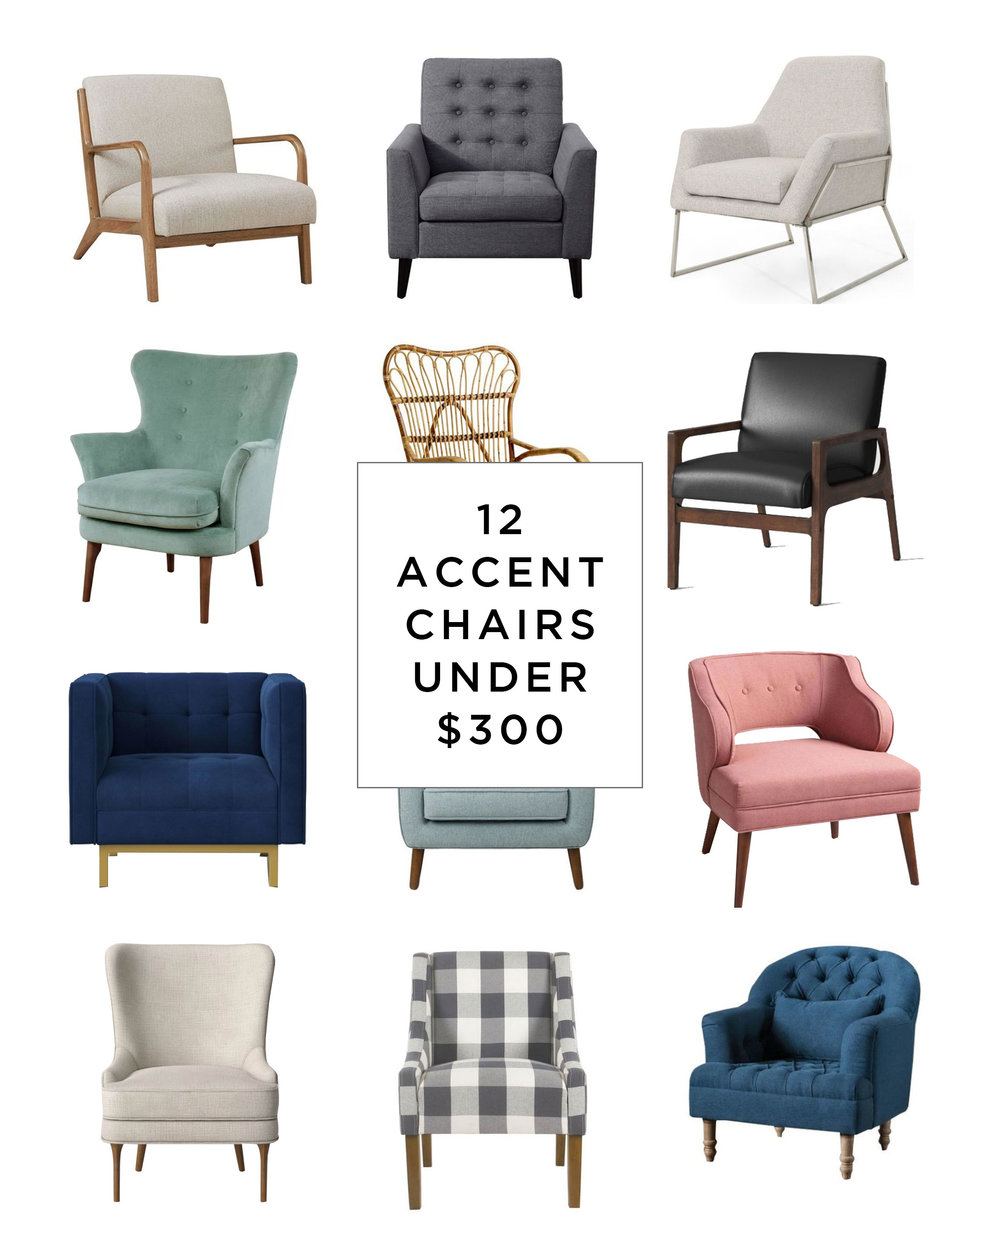 12-accent-chairs-pin.jpg